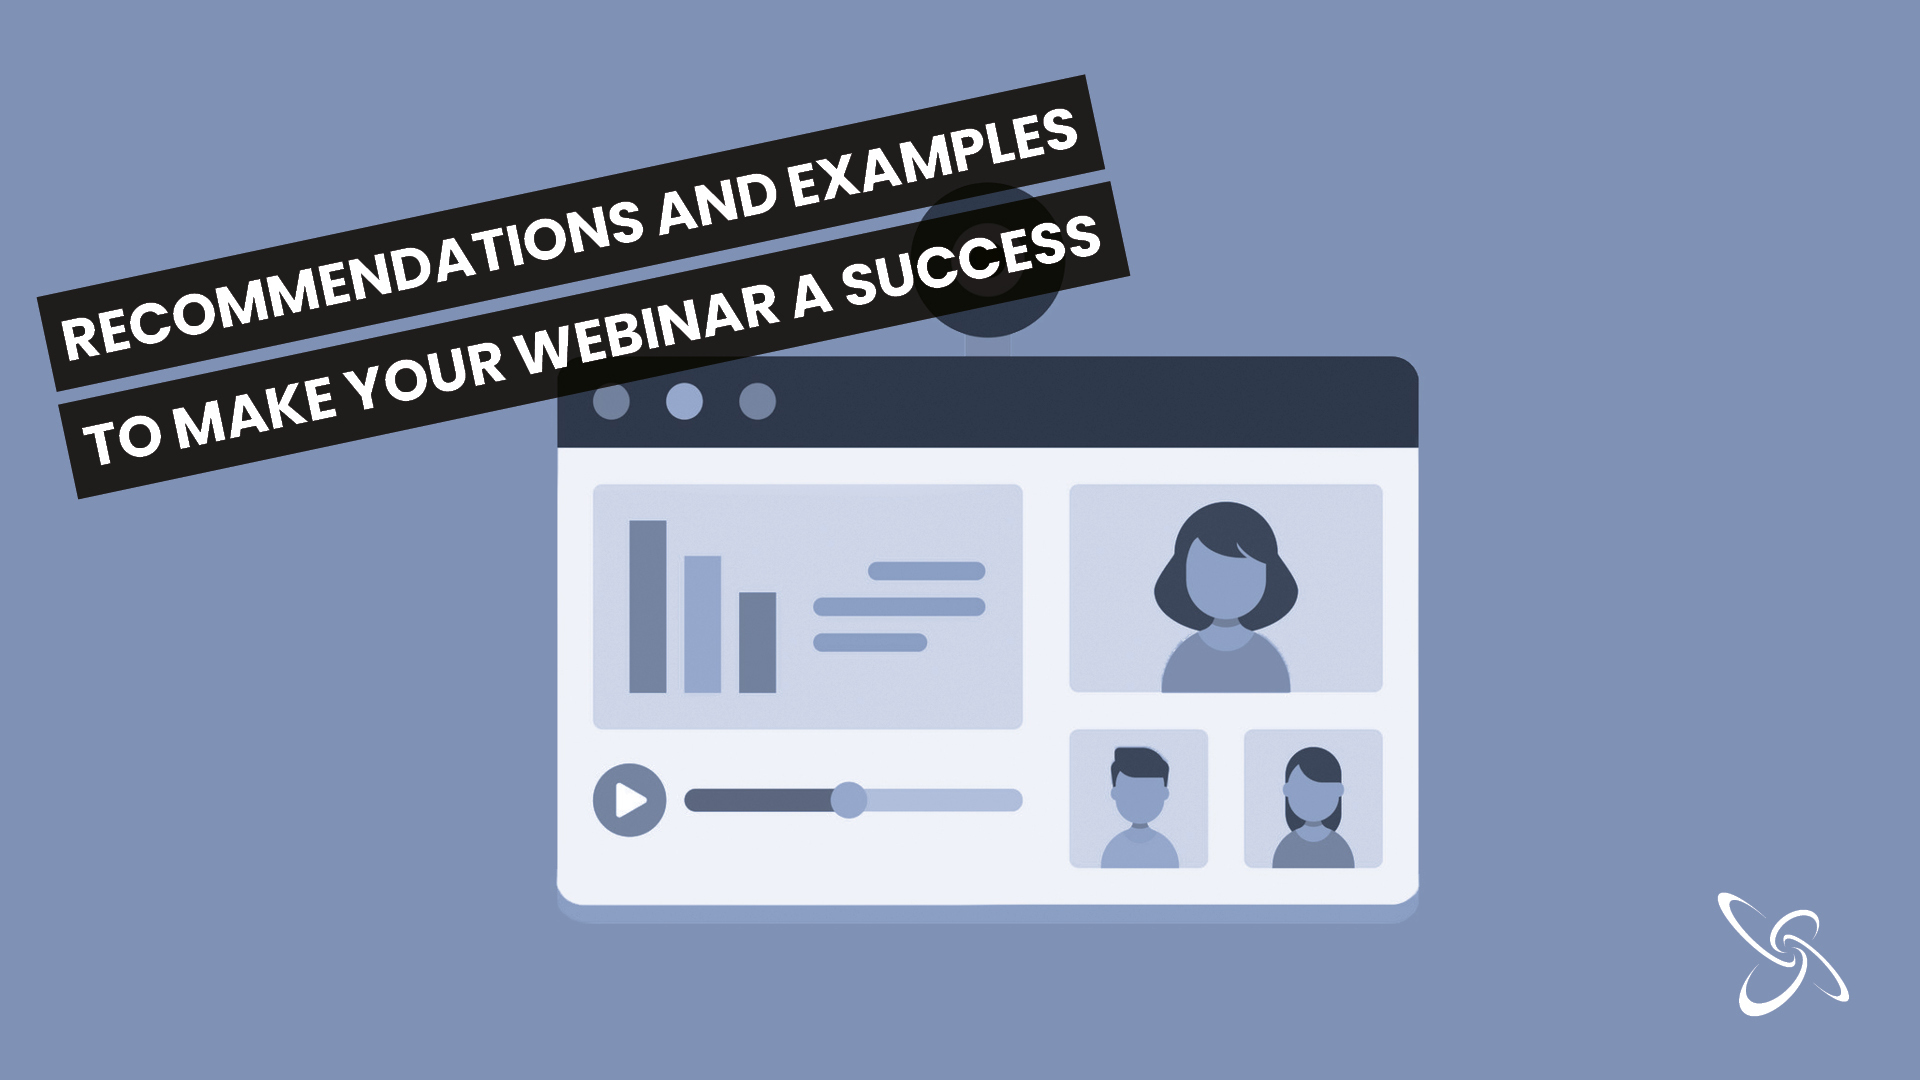 Recommendations and examples to make your webinar a success